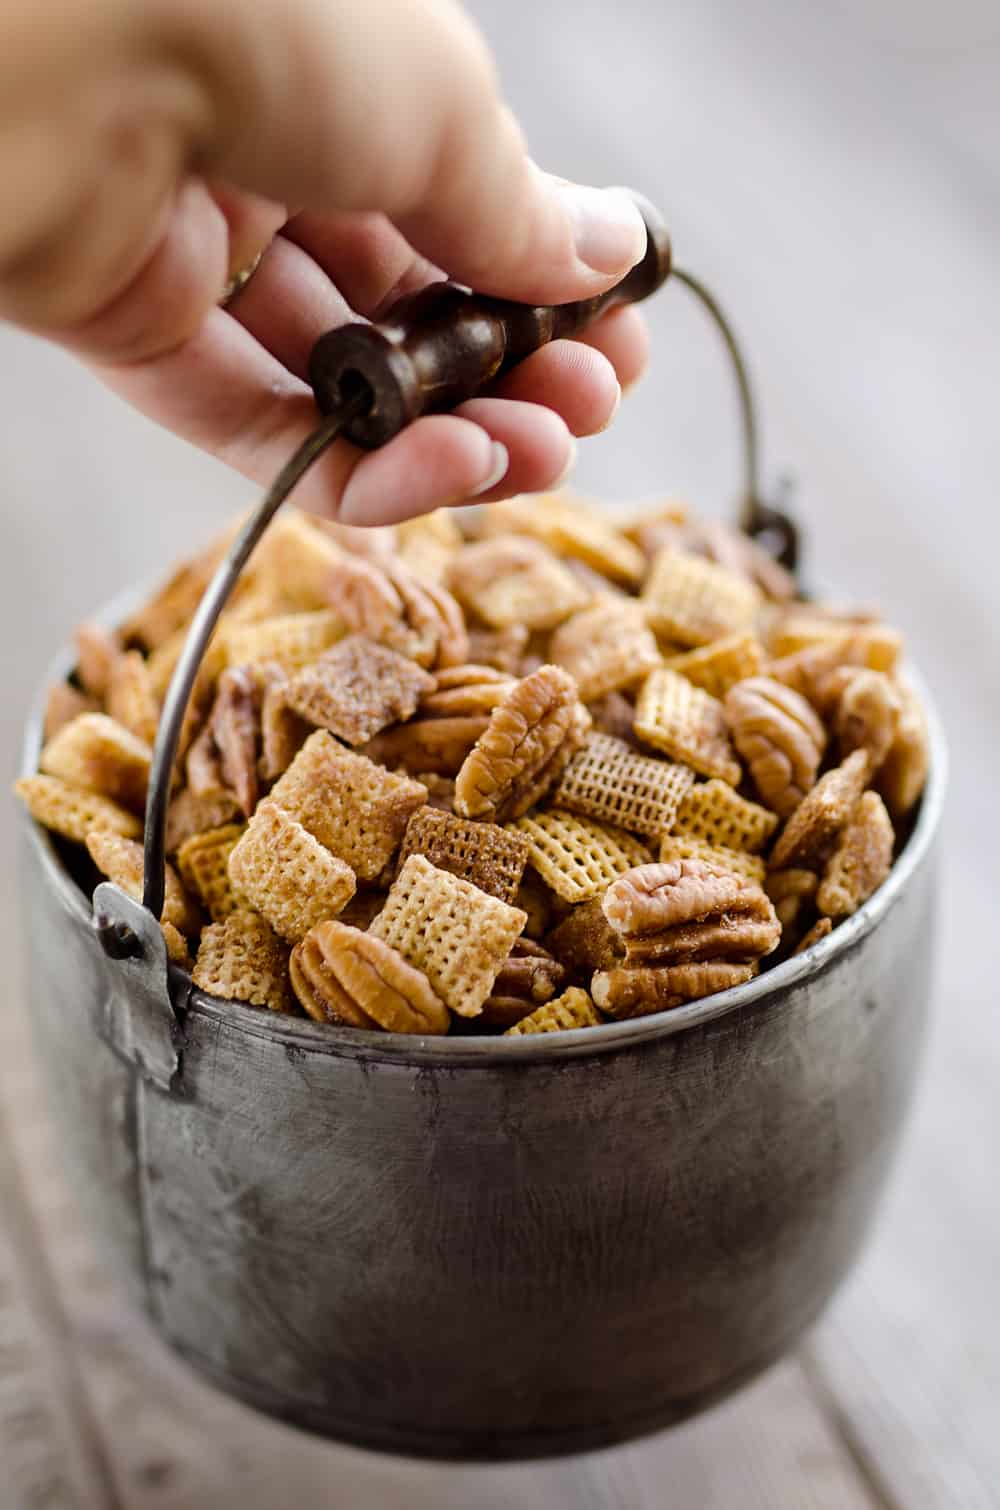 Sweet & Spicy Pecan Snack Mix is a delicious treat with Chex coated in a spicy cinnamon brown sugar mixture and tossed with pecans. This delicious Chex Mix will disappear quickly at your next holiday gathering!